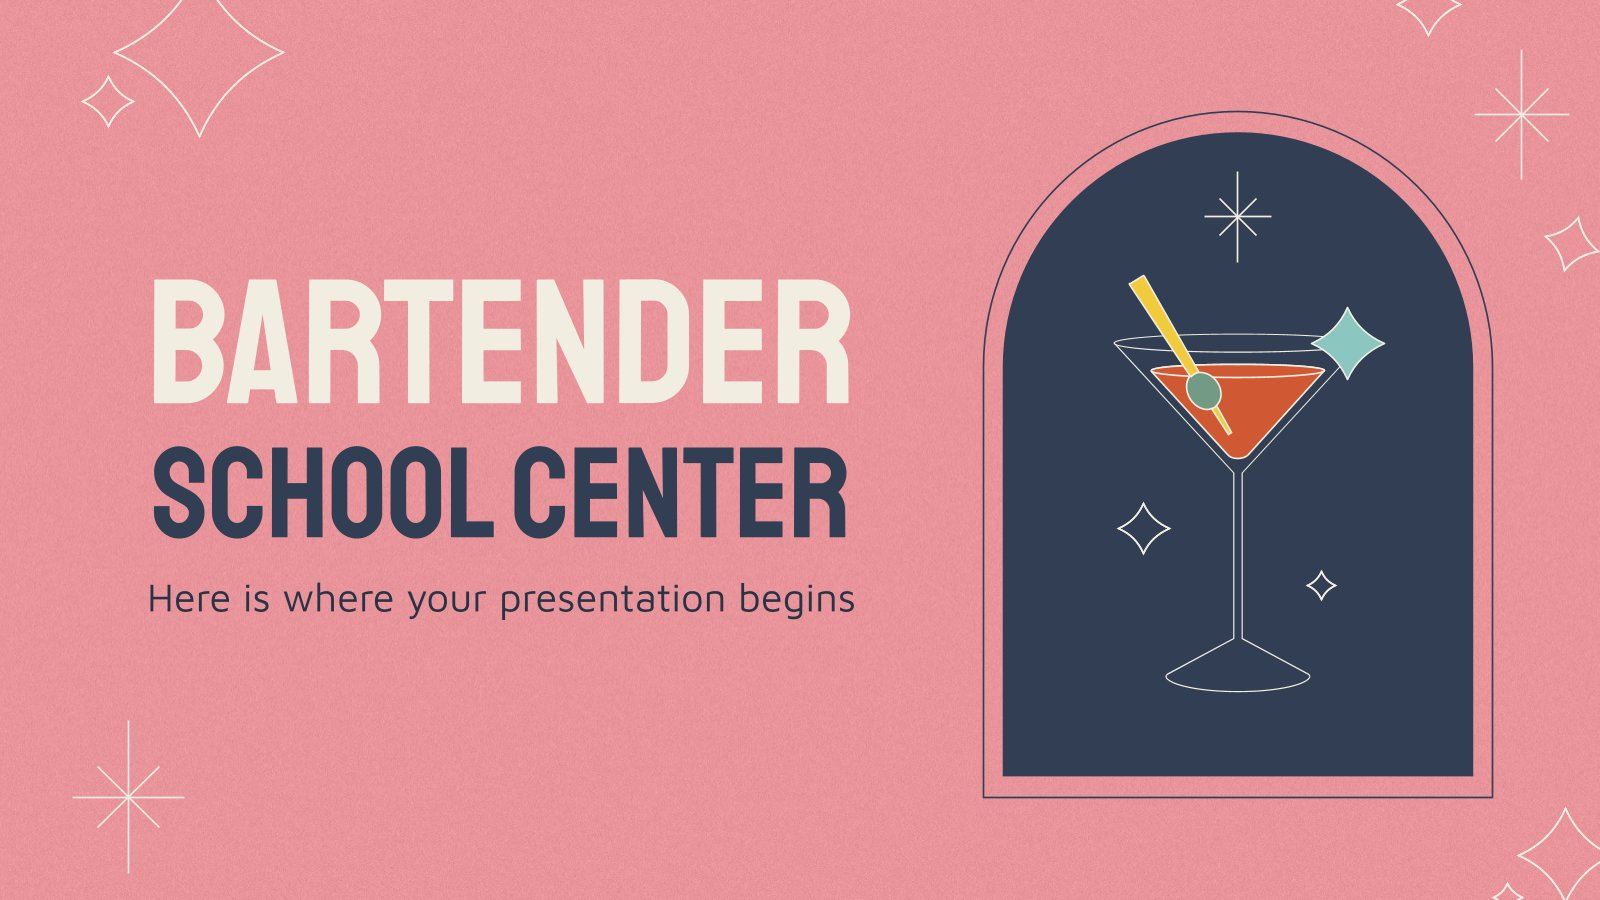 Bartender School Center presentation template